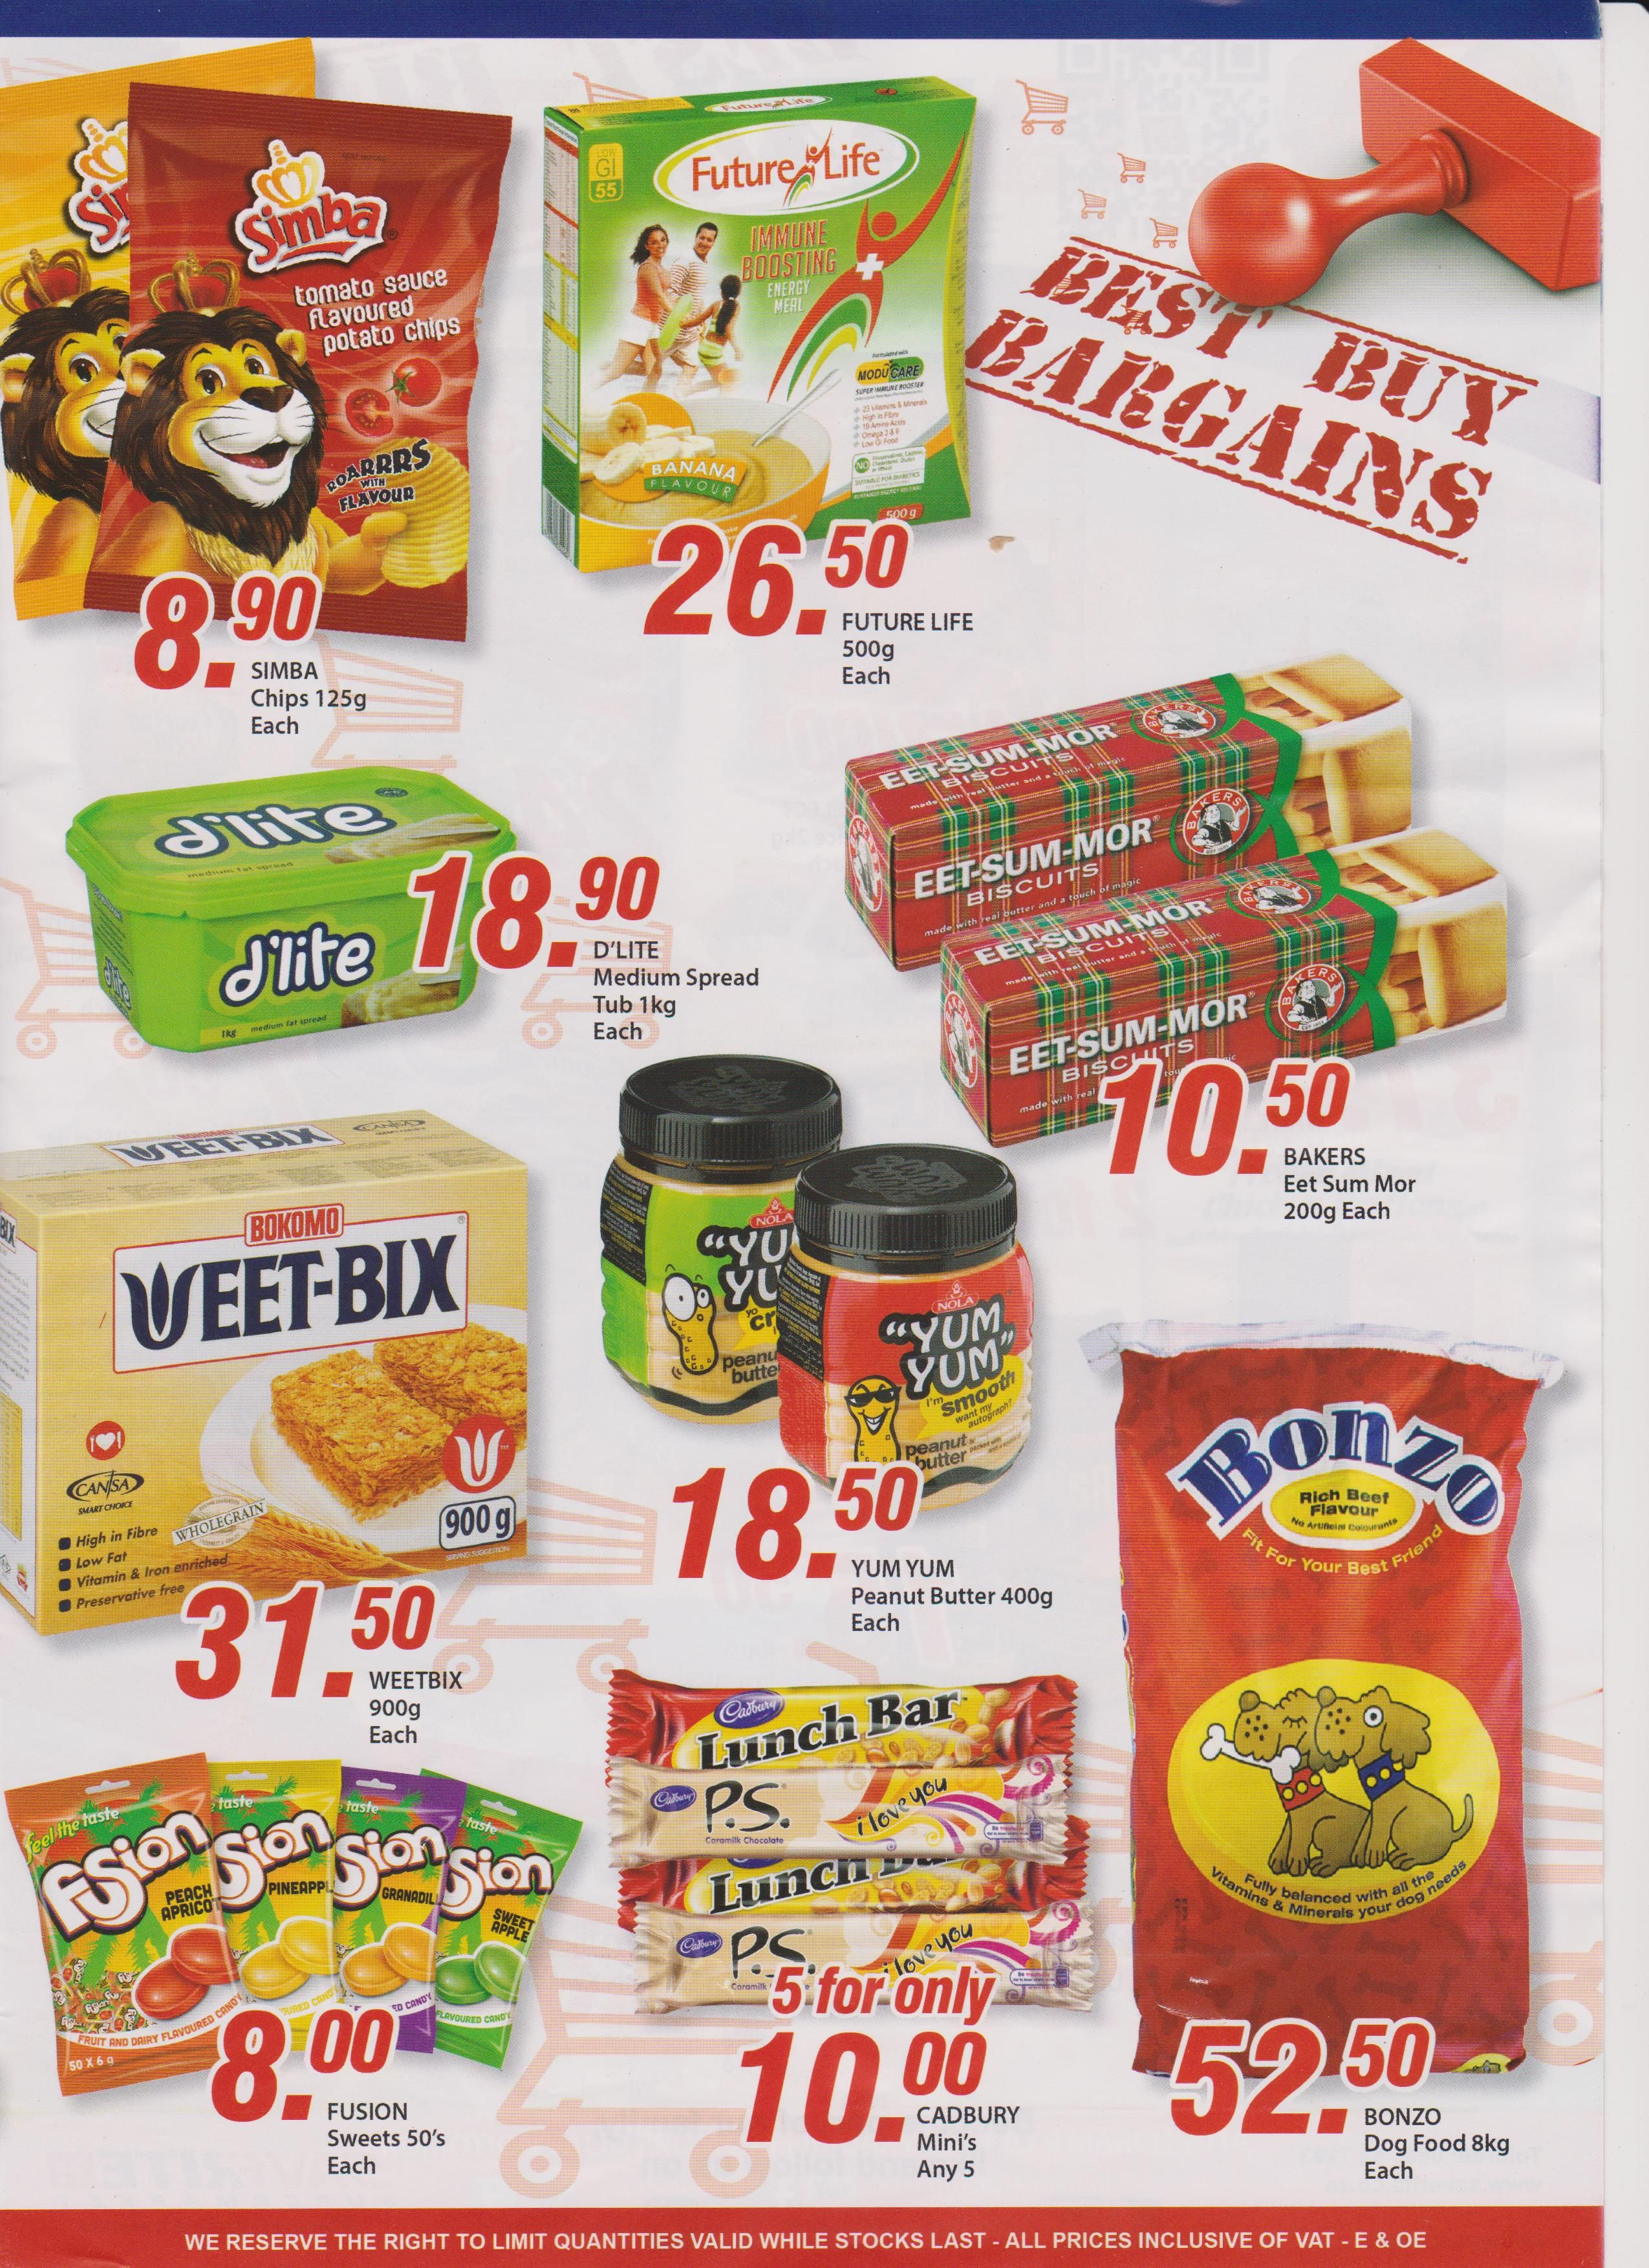 27th February specials for the week from #saveritesupermarketyorkstreet. #groceries #supermarket #Essentials